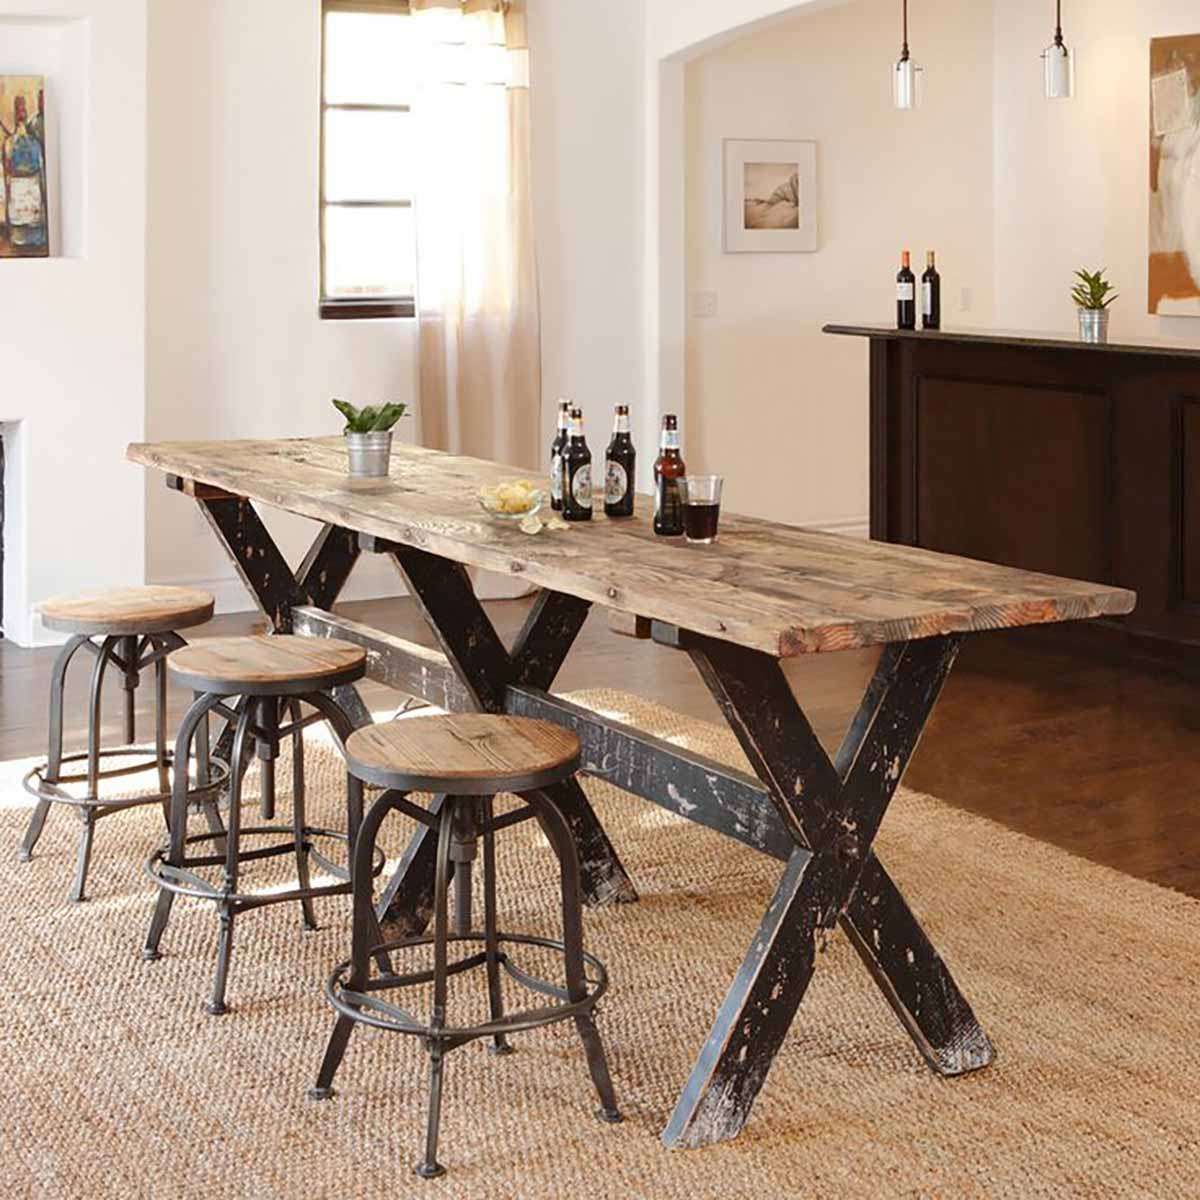 4 Long Skinny Dining Table Lovely Long Narrow Dining Table Amazing Furniture Tables Galle Narrow Dining Tables Long Narrow Dining Table Rectangle Dining Table